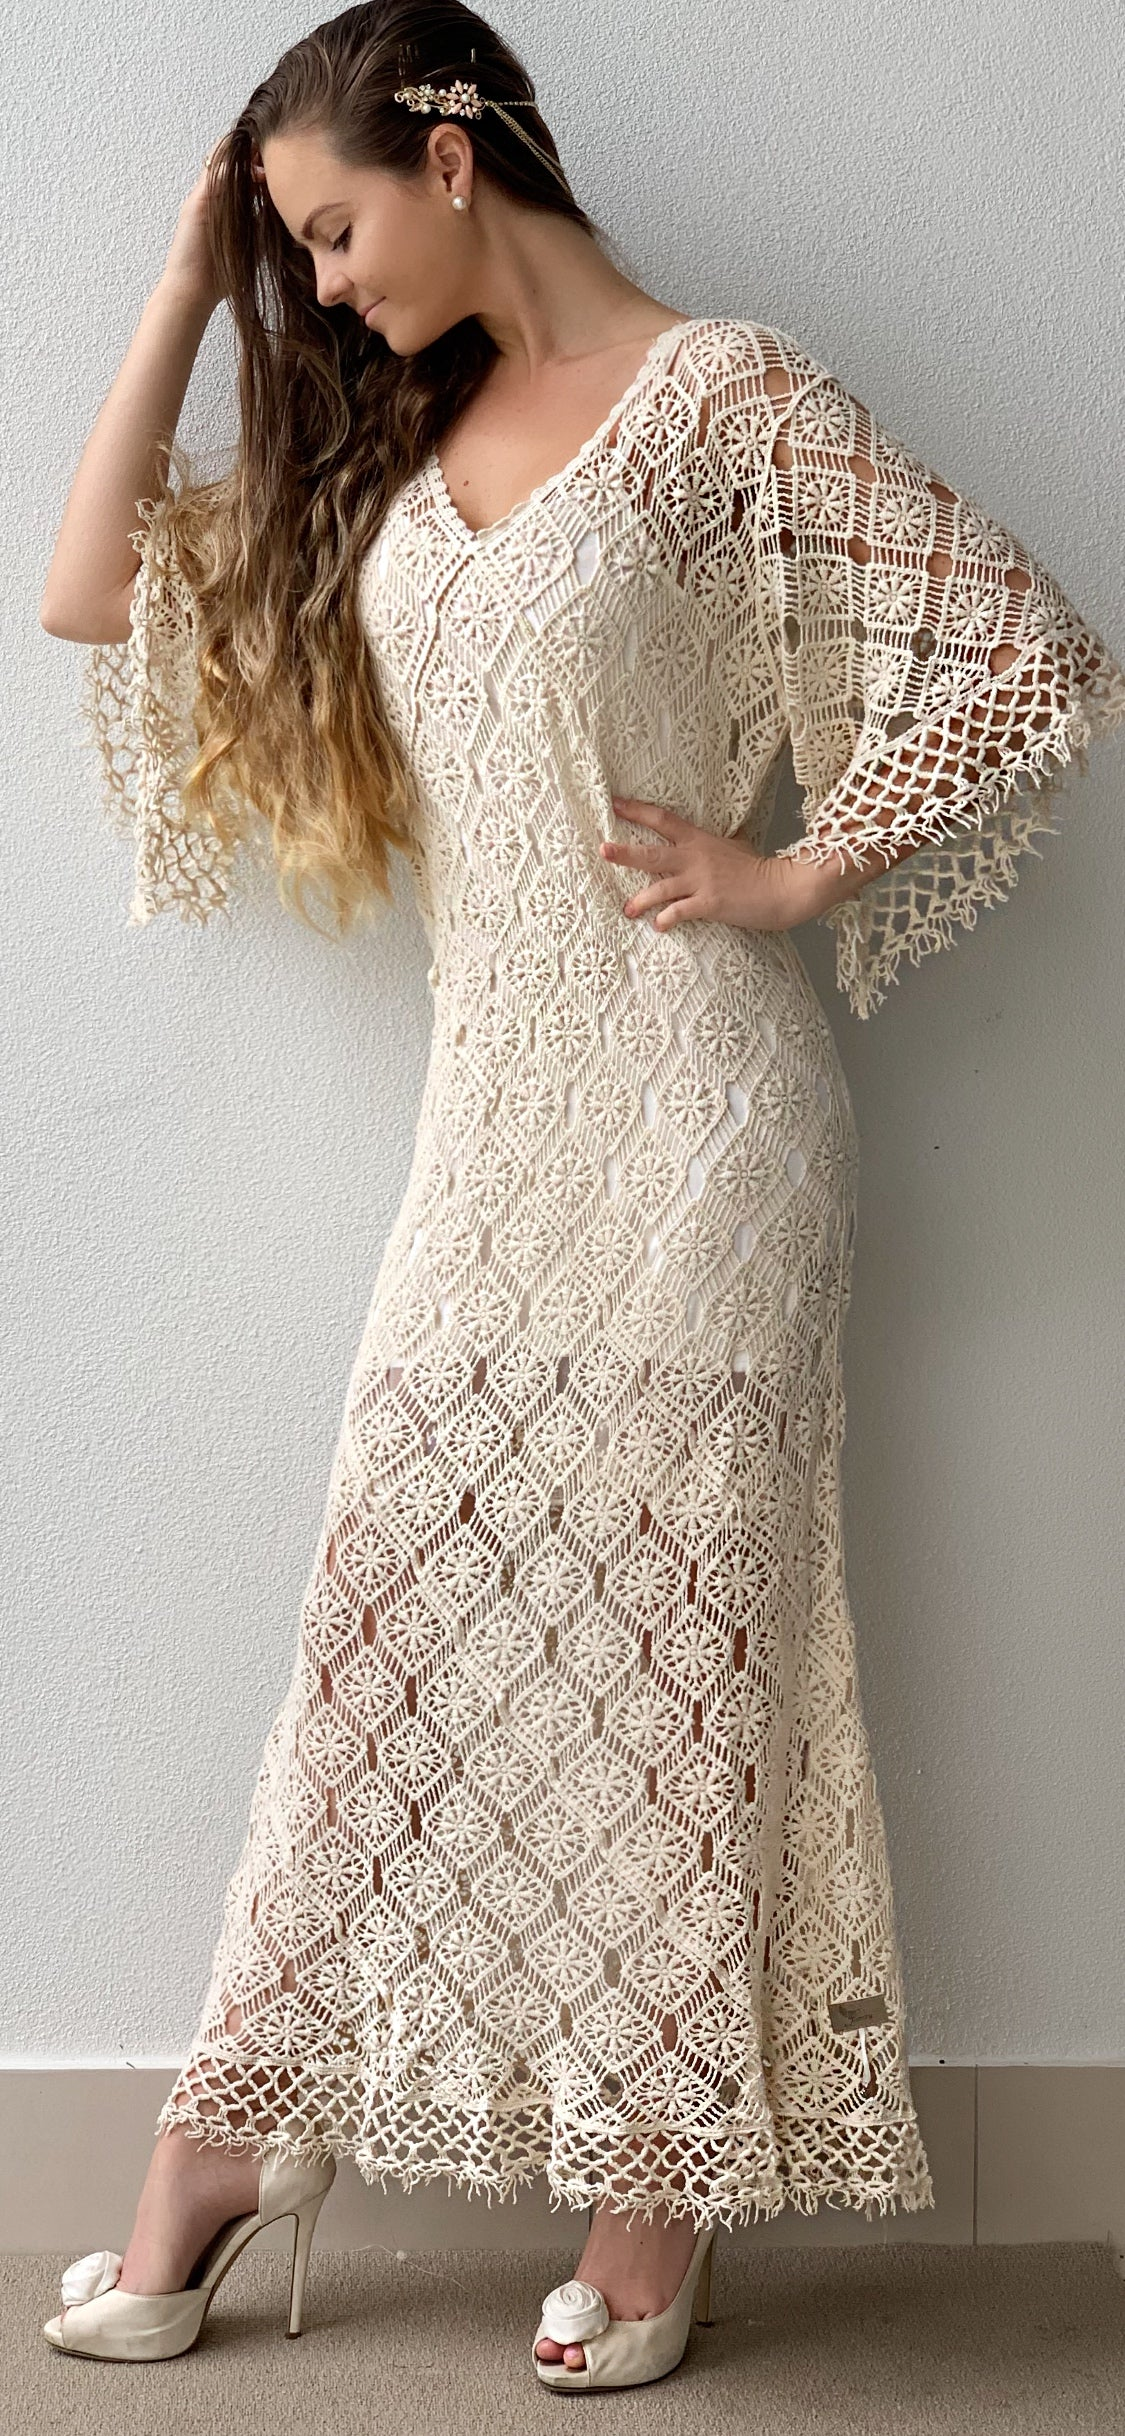 Teena Crochet dress | Purity Lace Designs